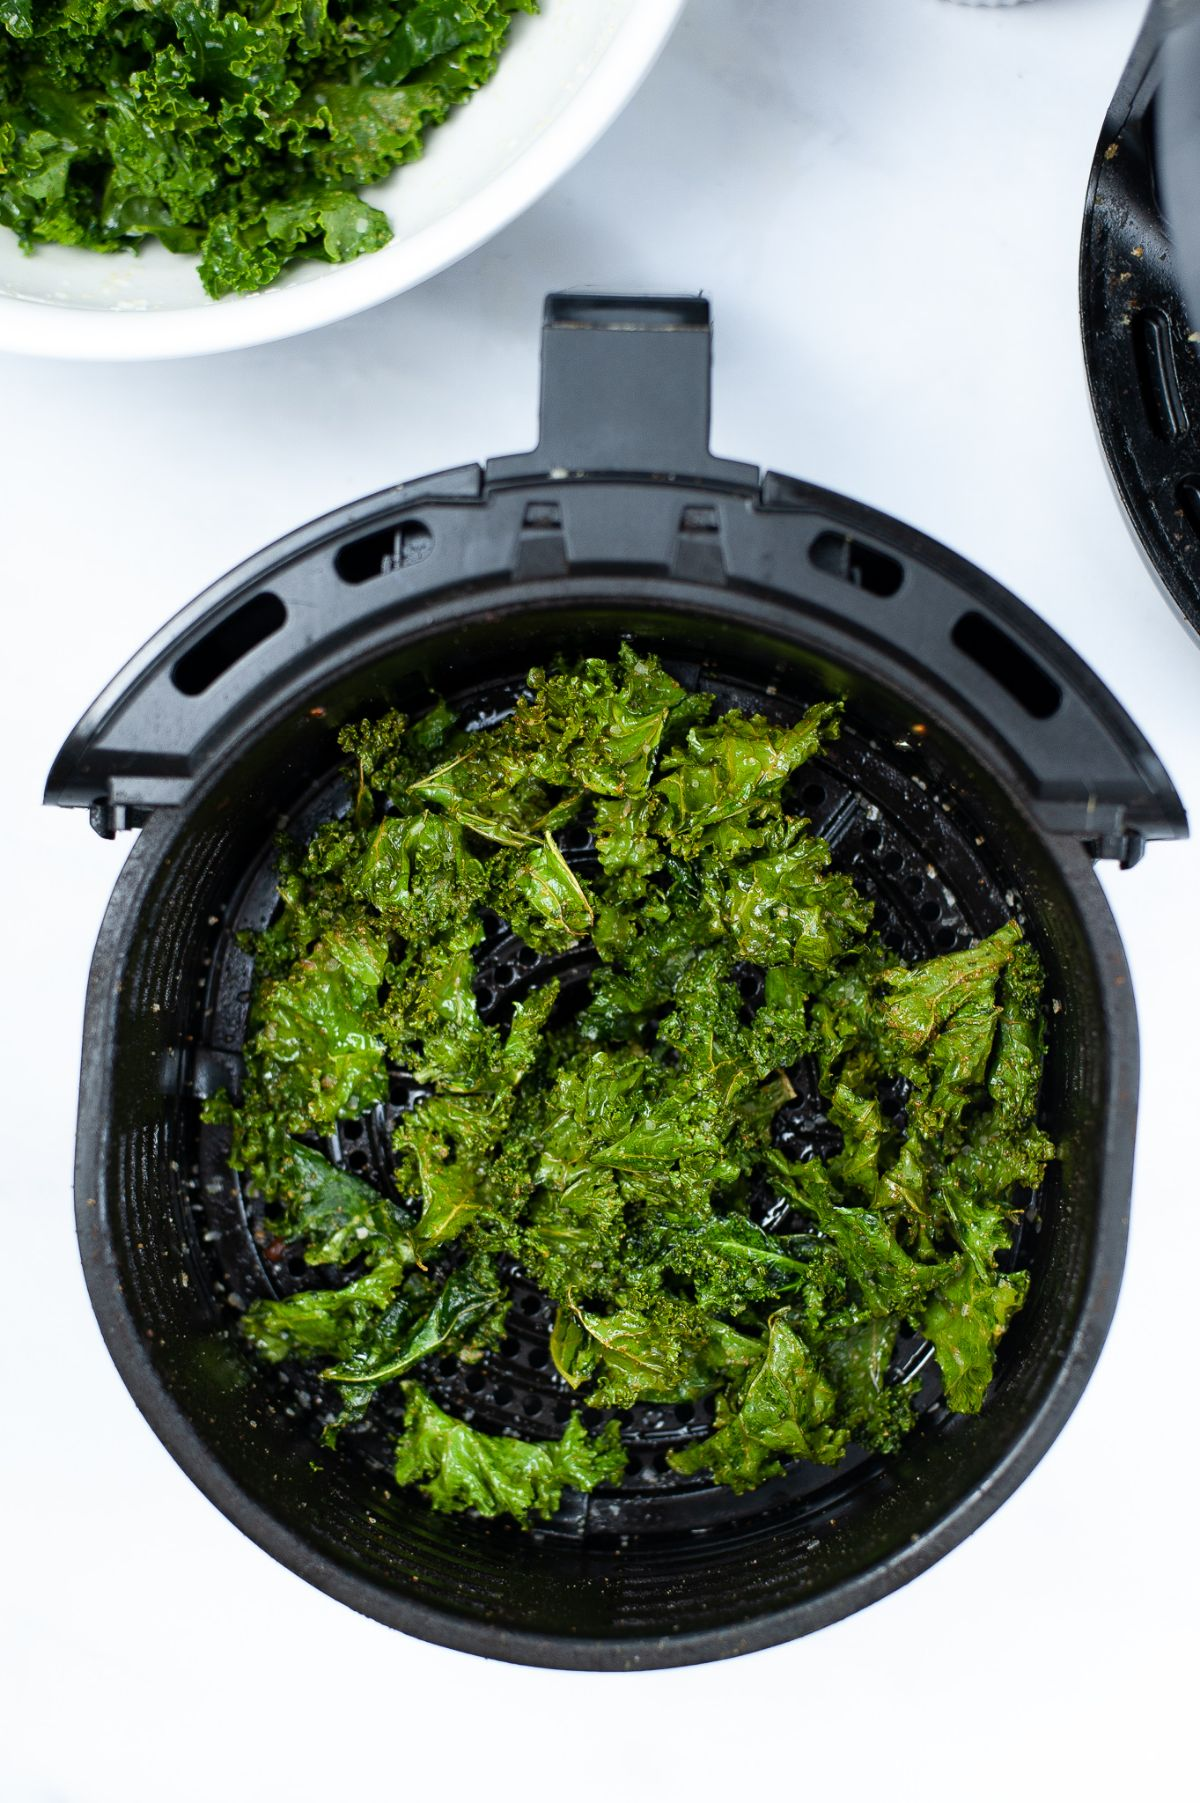 Kale chips in an air fryer basket just right after cooking.